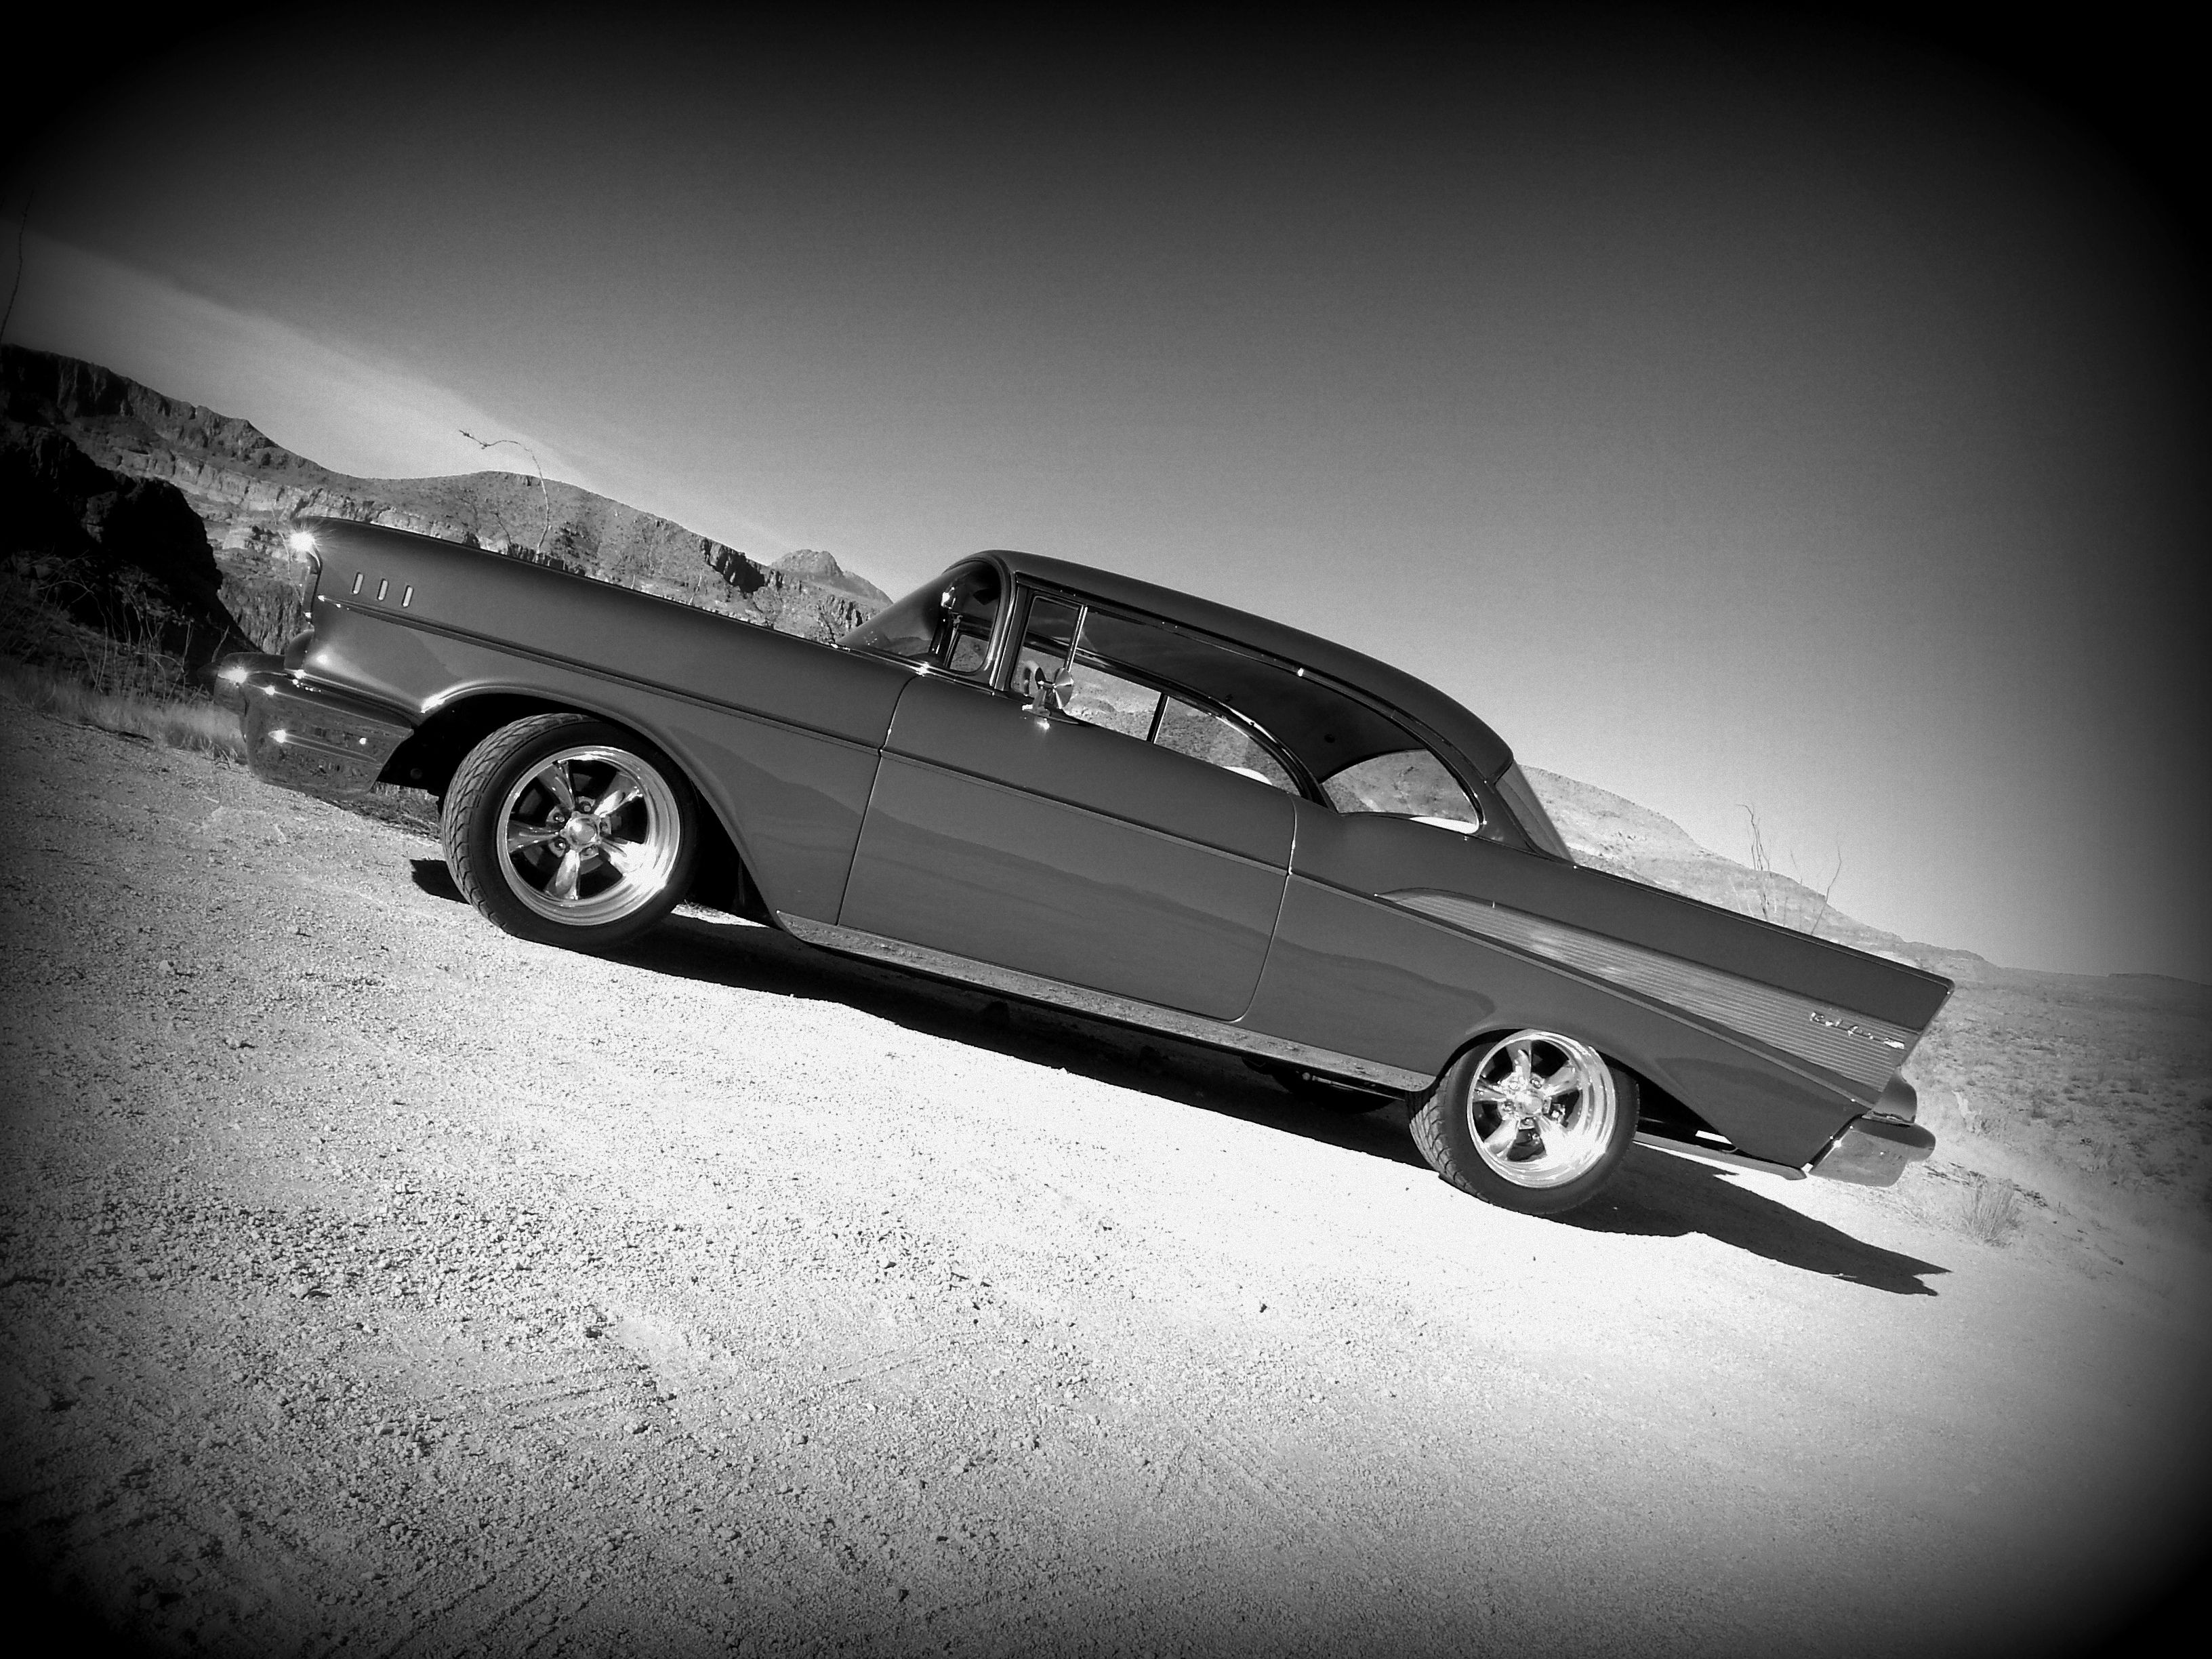 John's 1957 Bel Air completed by Superstition Specialty Cars